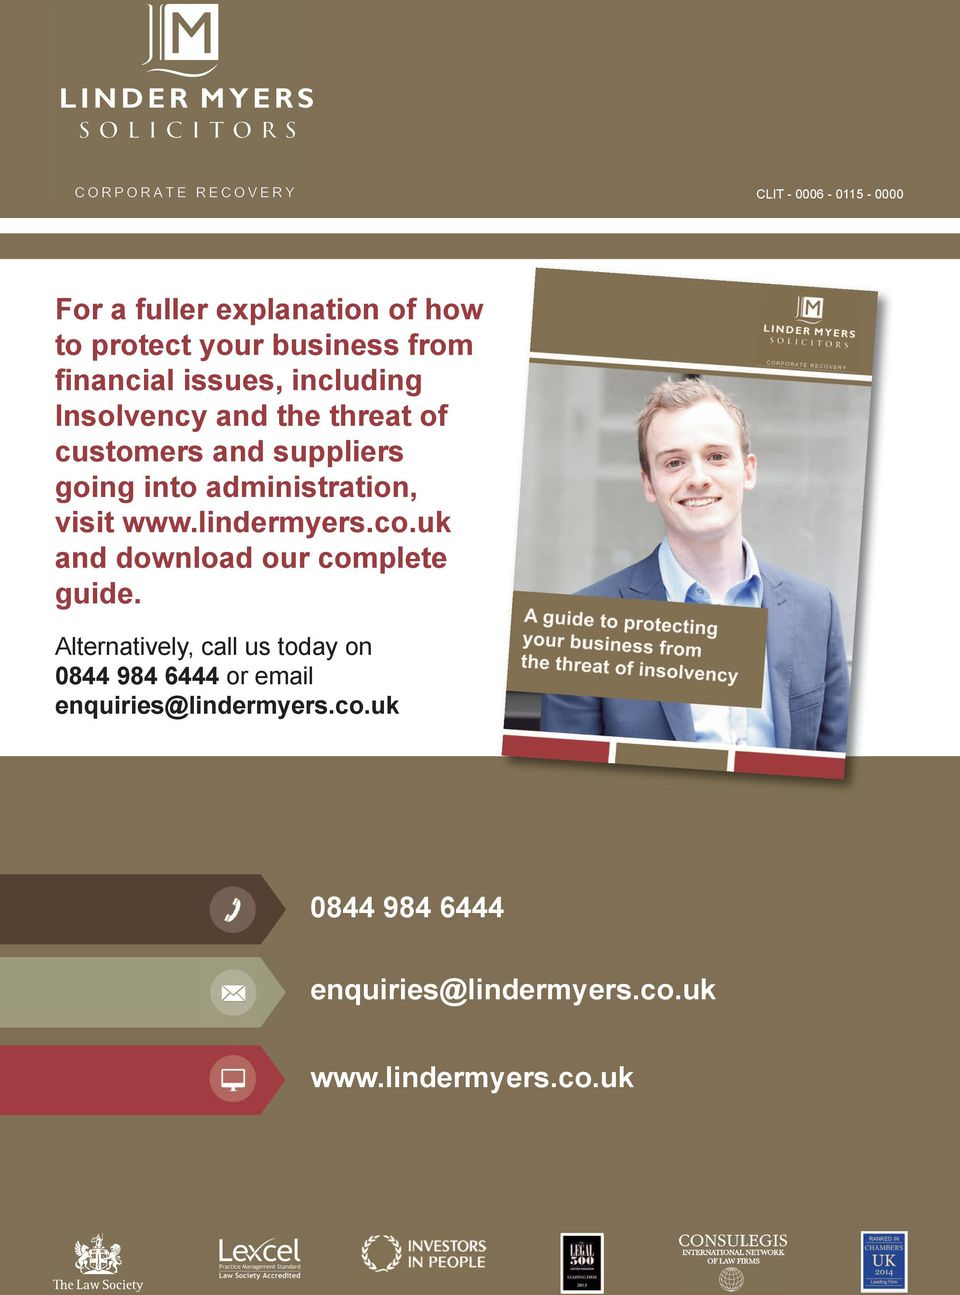 visit www.lindermyers.co.uk and download our complete guide.